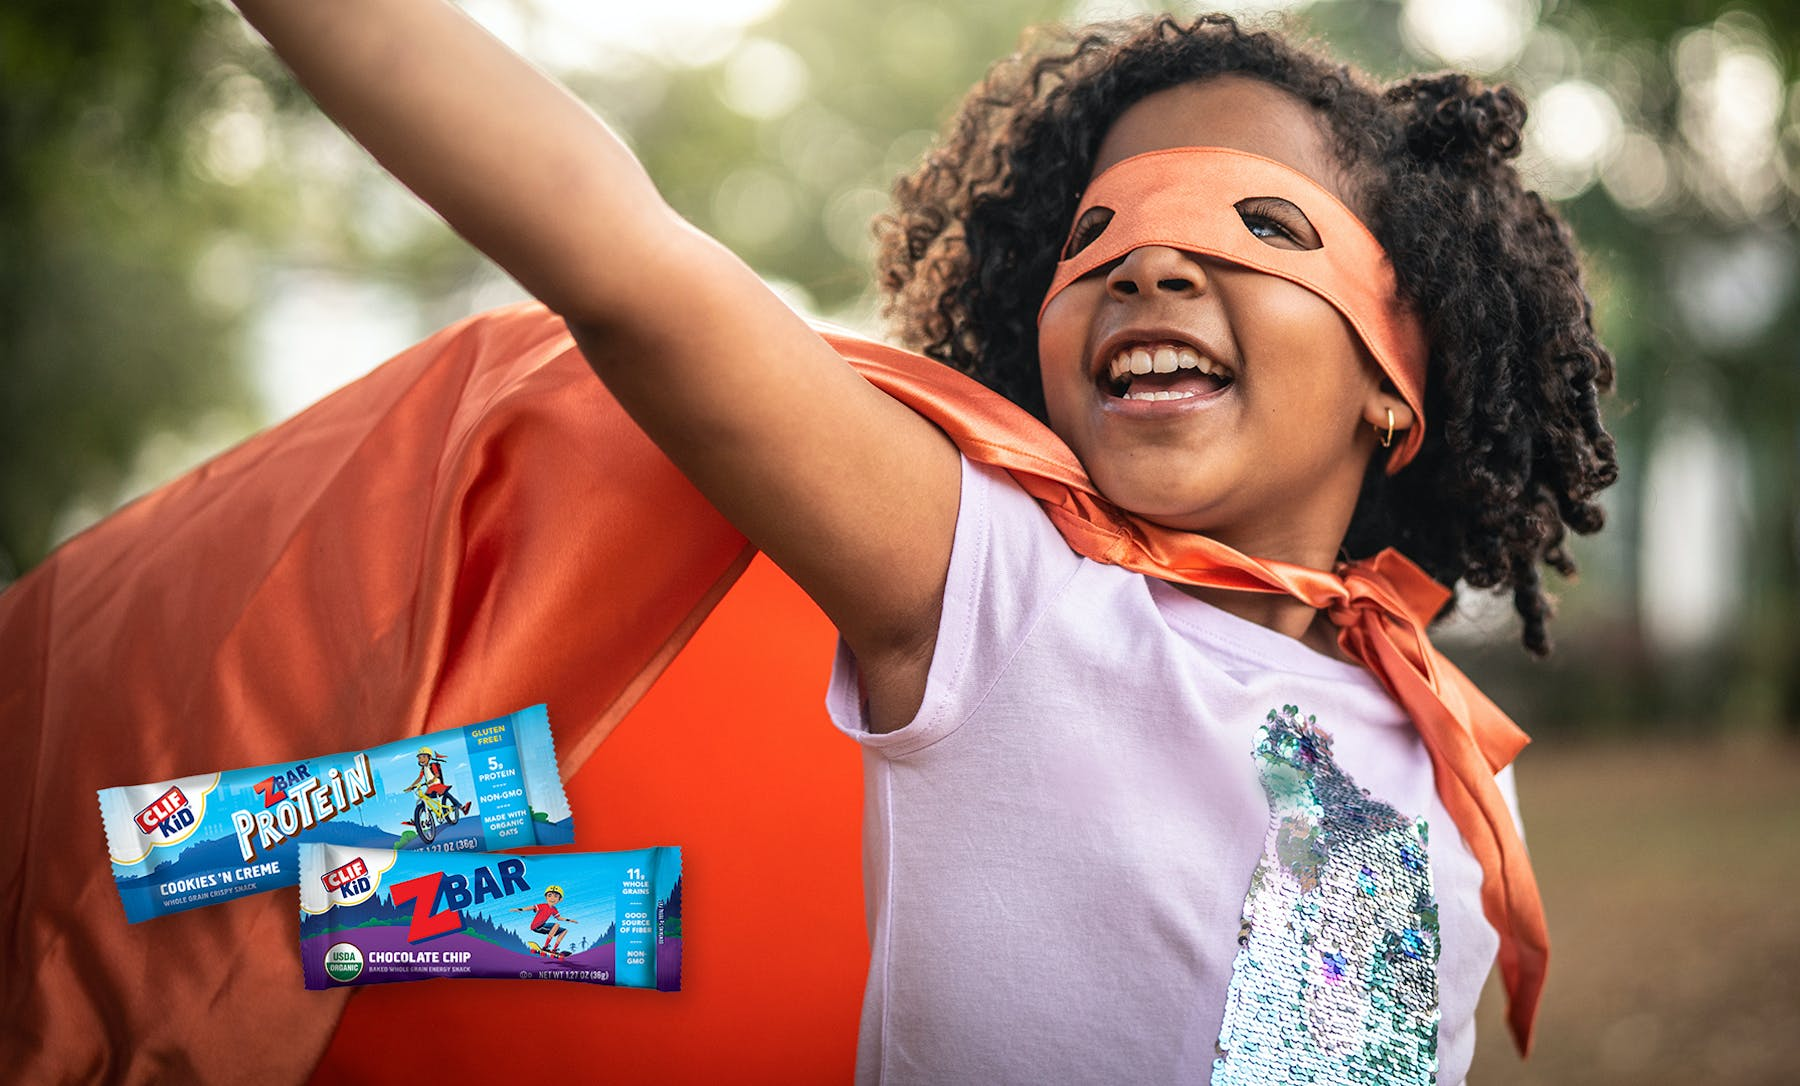 Girl in mask and cape with CLIF Kid bars